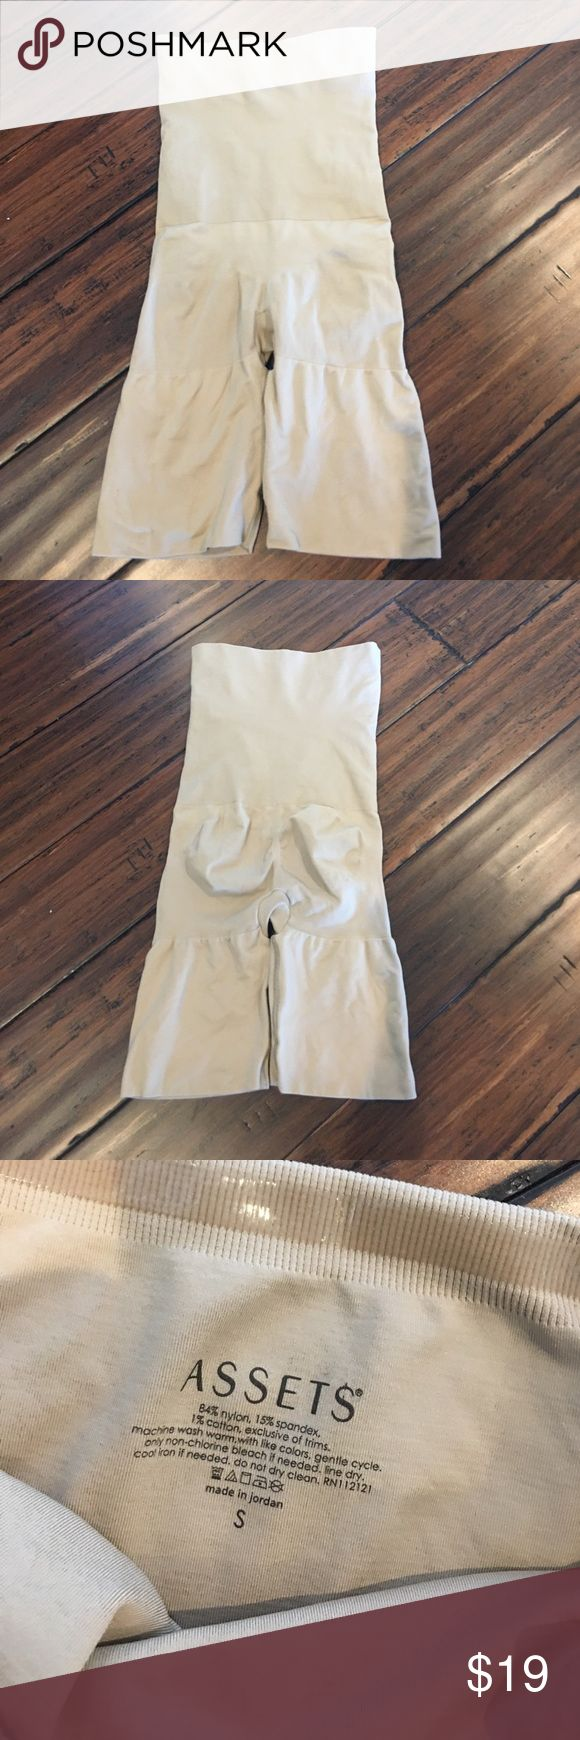 Assets By Spanx Nude High Waist Control Shaper S Assets By Spanx Nude High Waist Control Shaper S - worn once for a wedding ASSETS by Sara Blakely Intimates & Sleepwear Shapewear